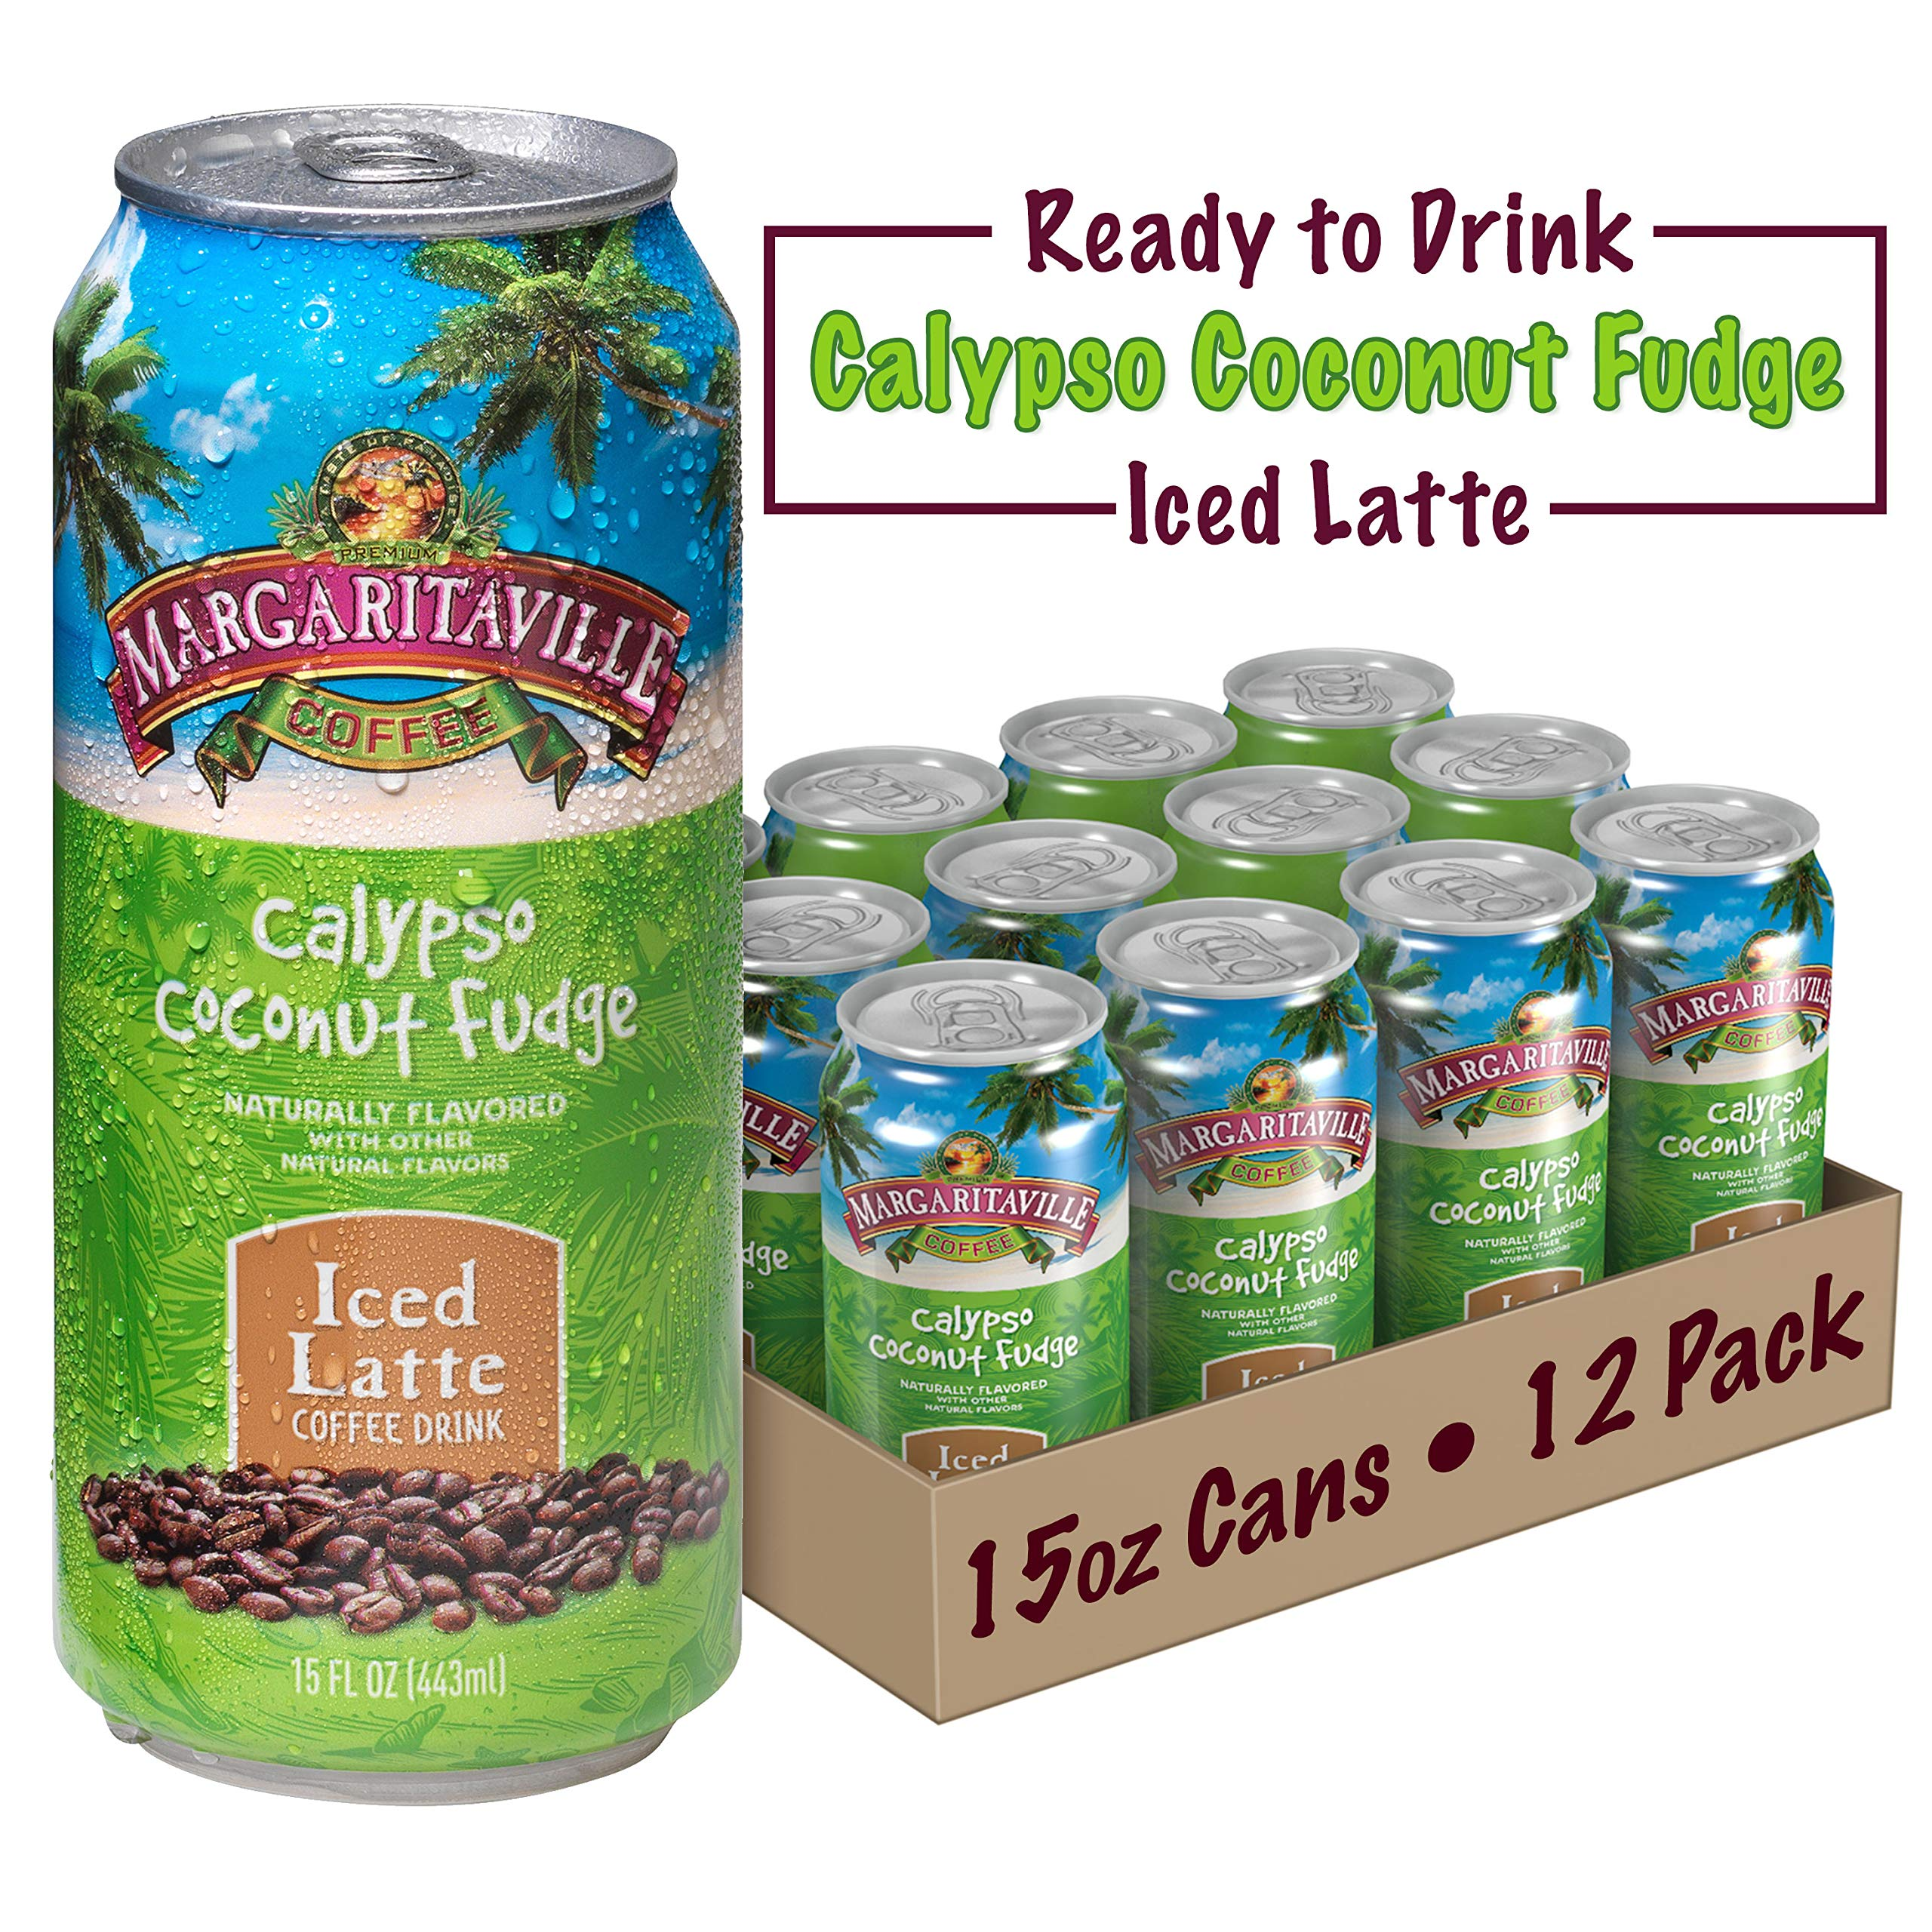 Margaritaville Coffee Pre-Made Calypso Coconut Fudge Latte, Ready to Drink, 15 Fl Oz (Pack of 12) by Margaritaville